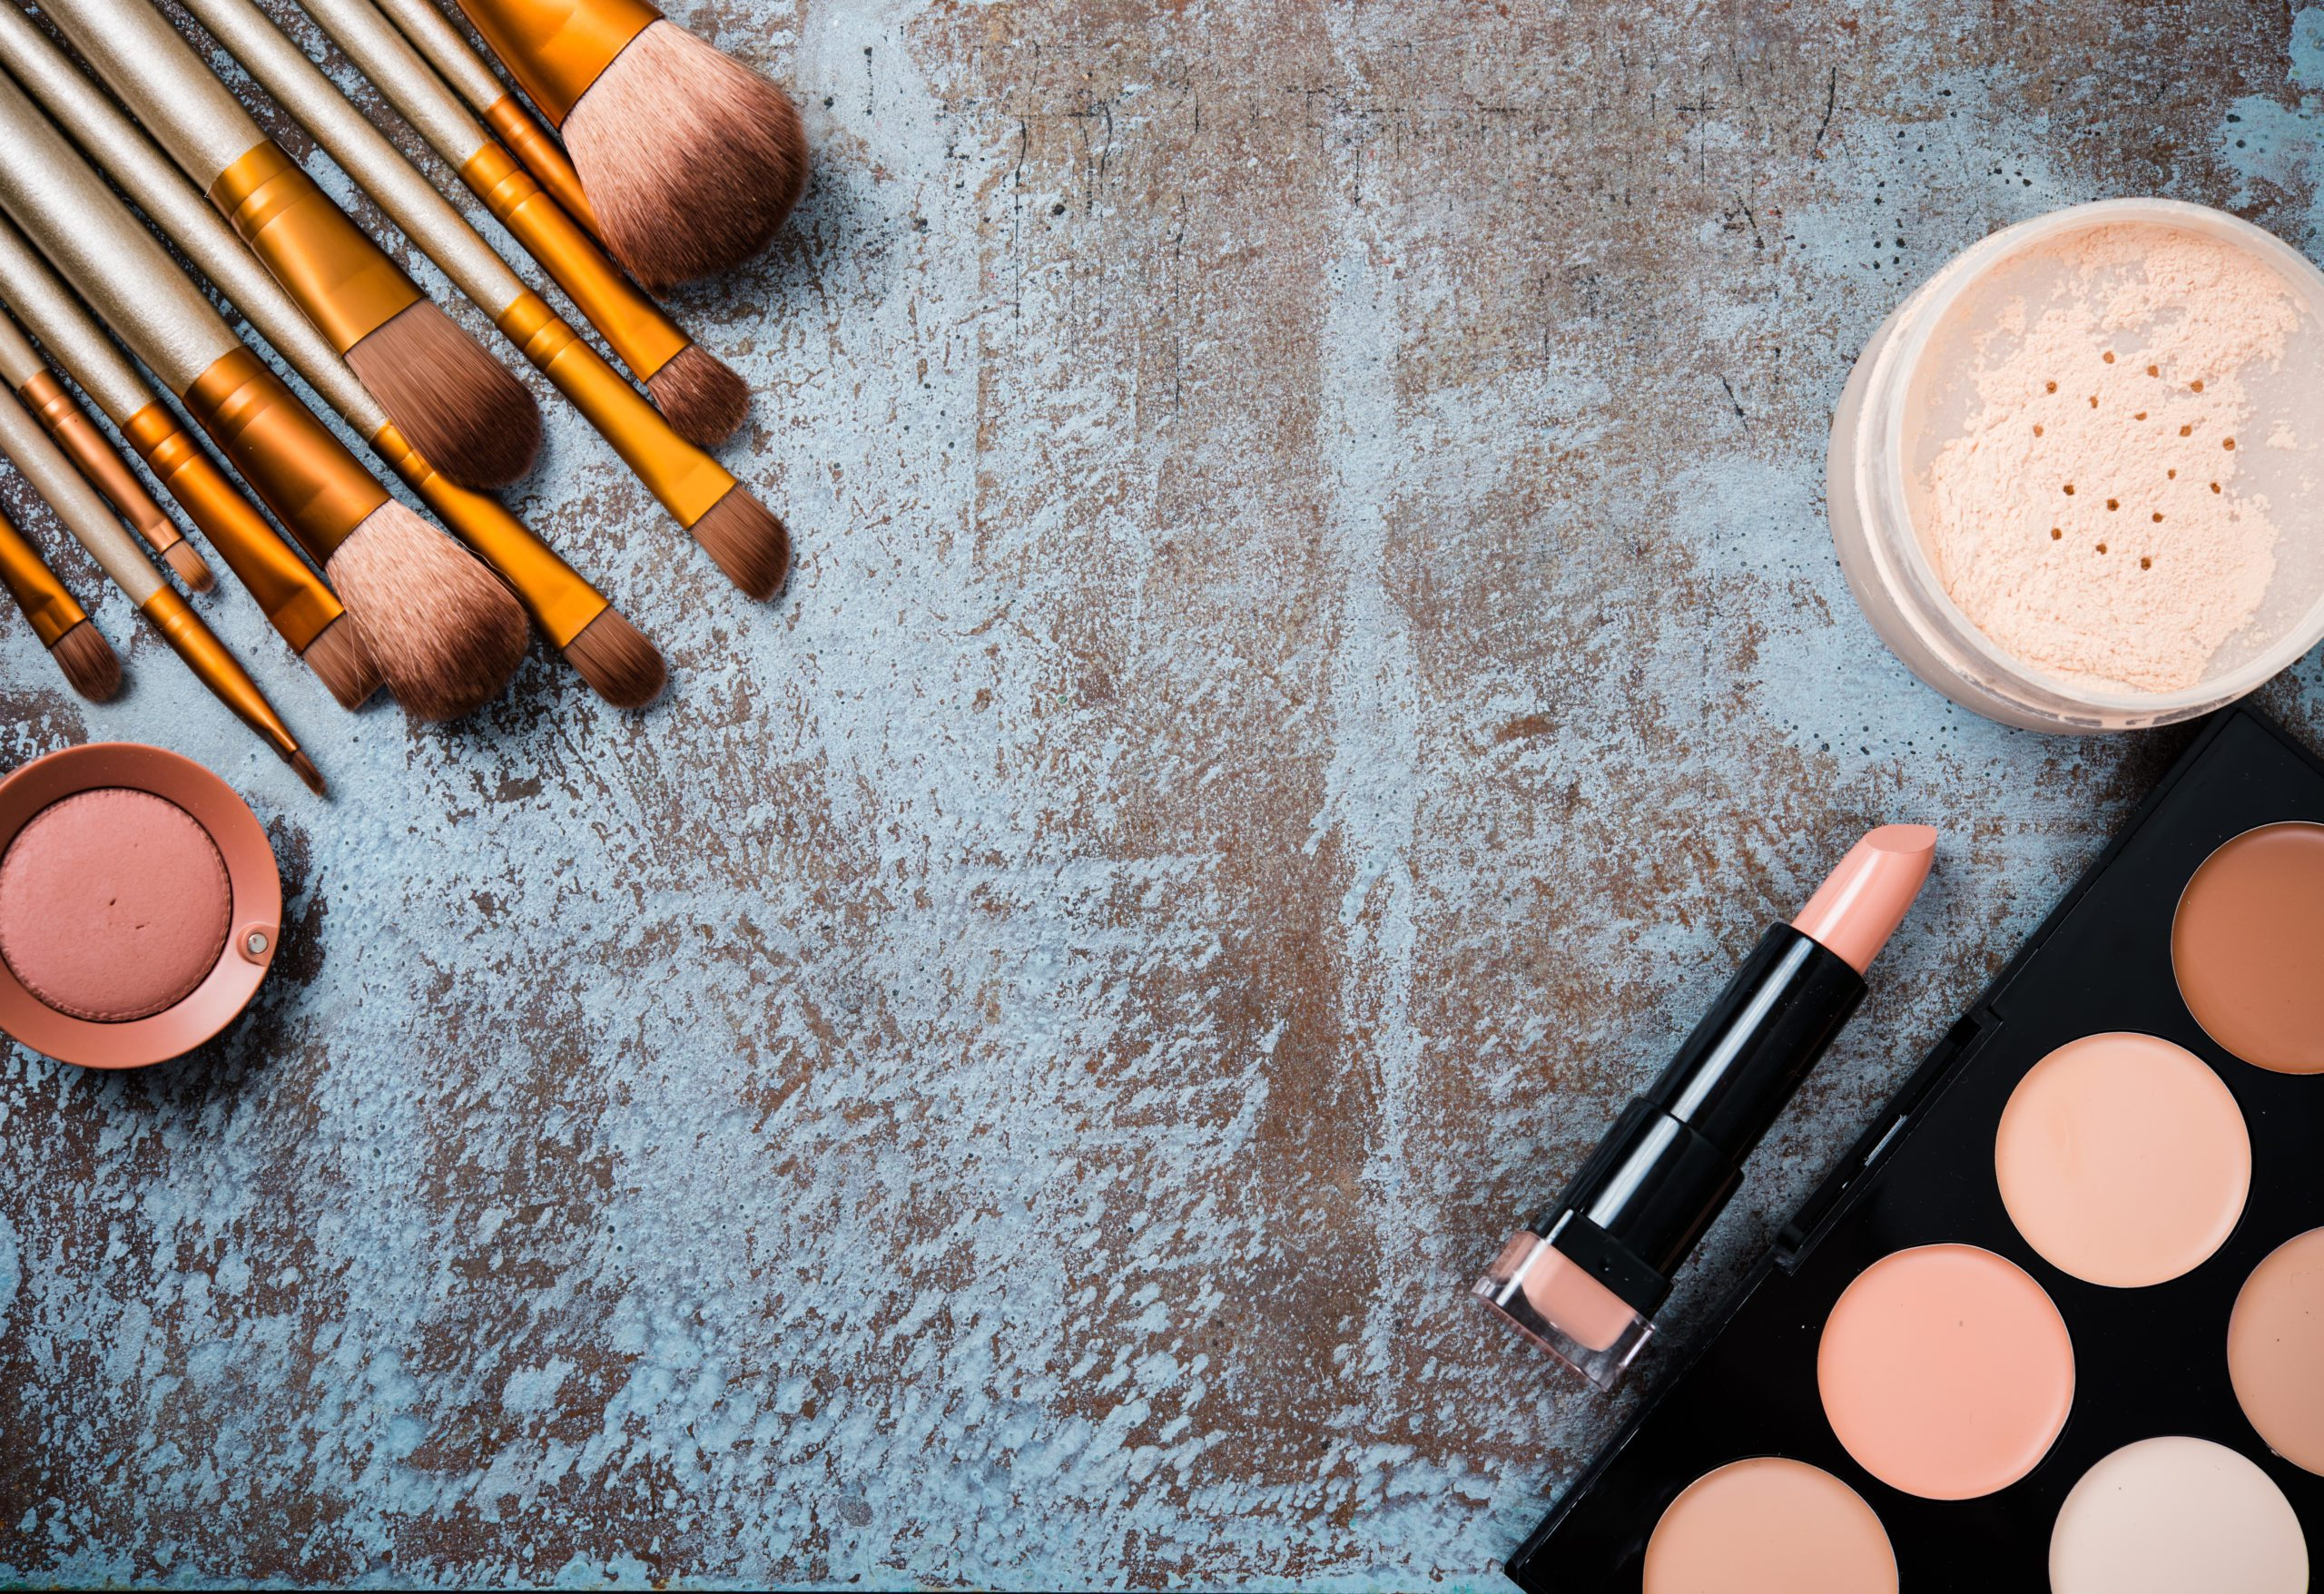 make up brushes and powders on a concrete table